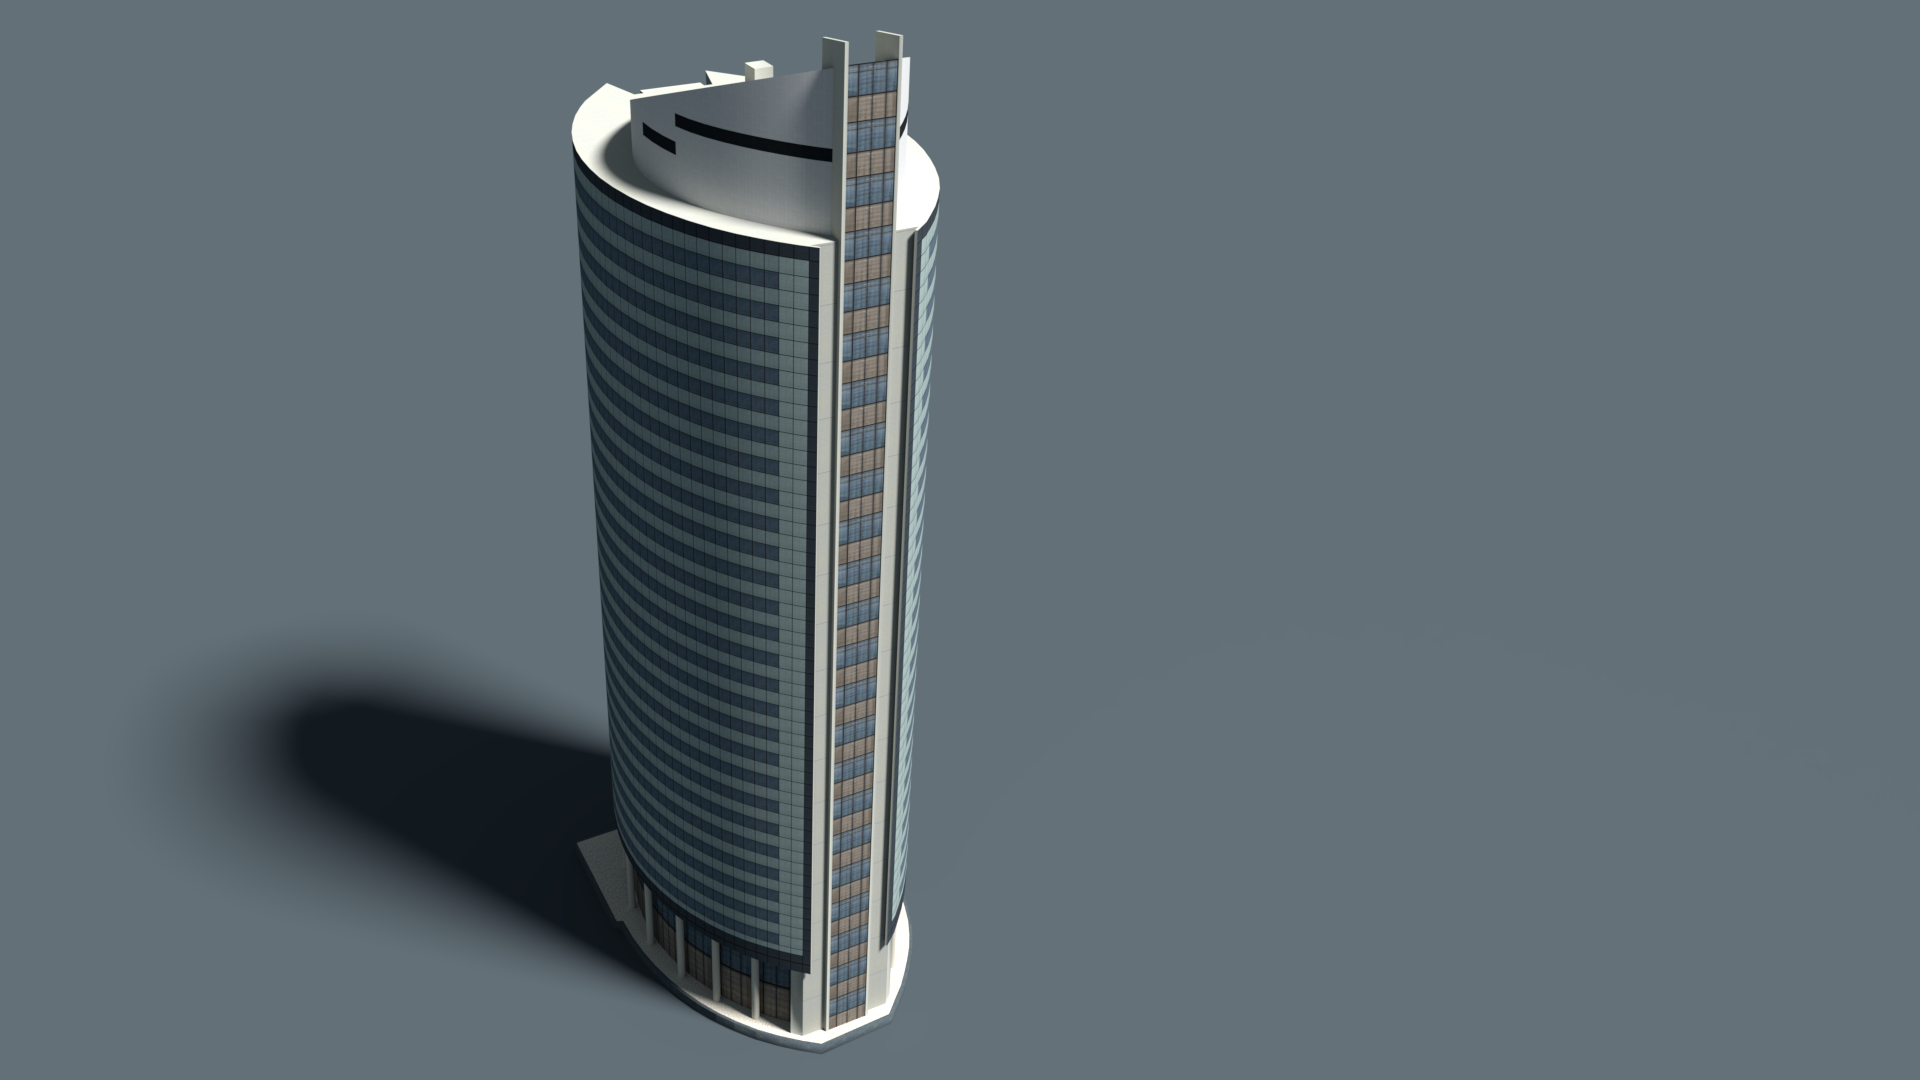 Modern building 3D model - TurboSquid 1406388